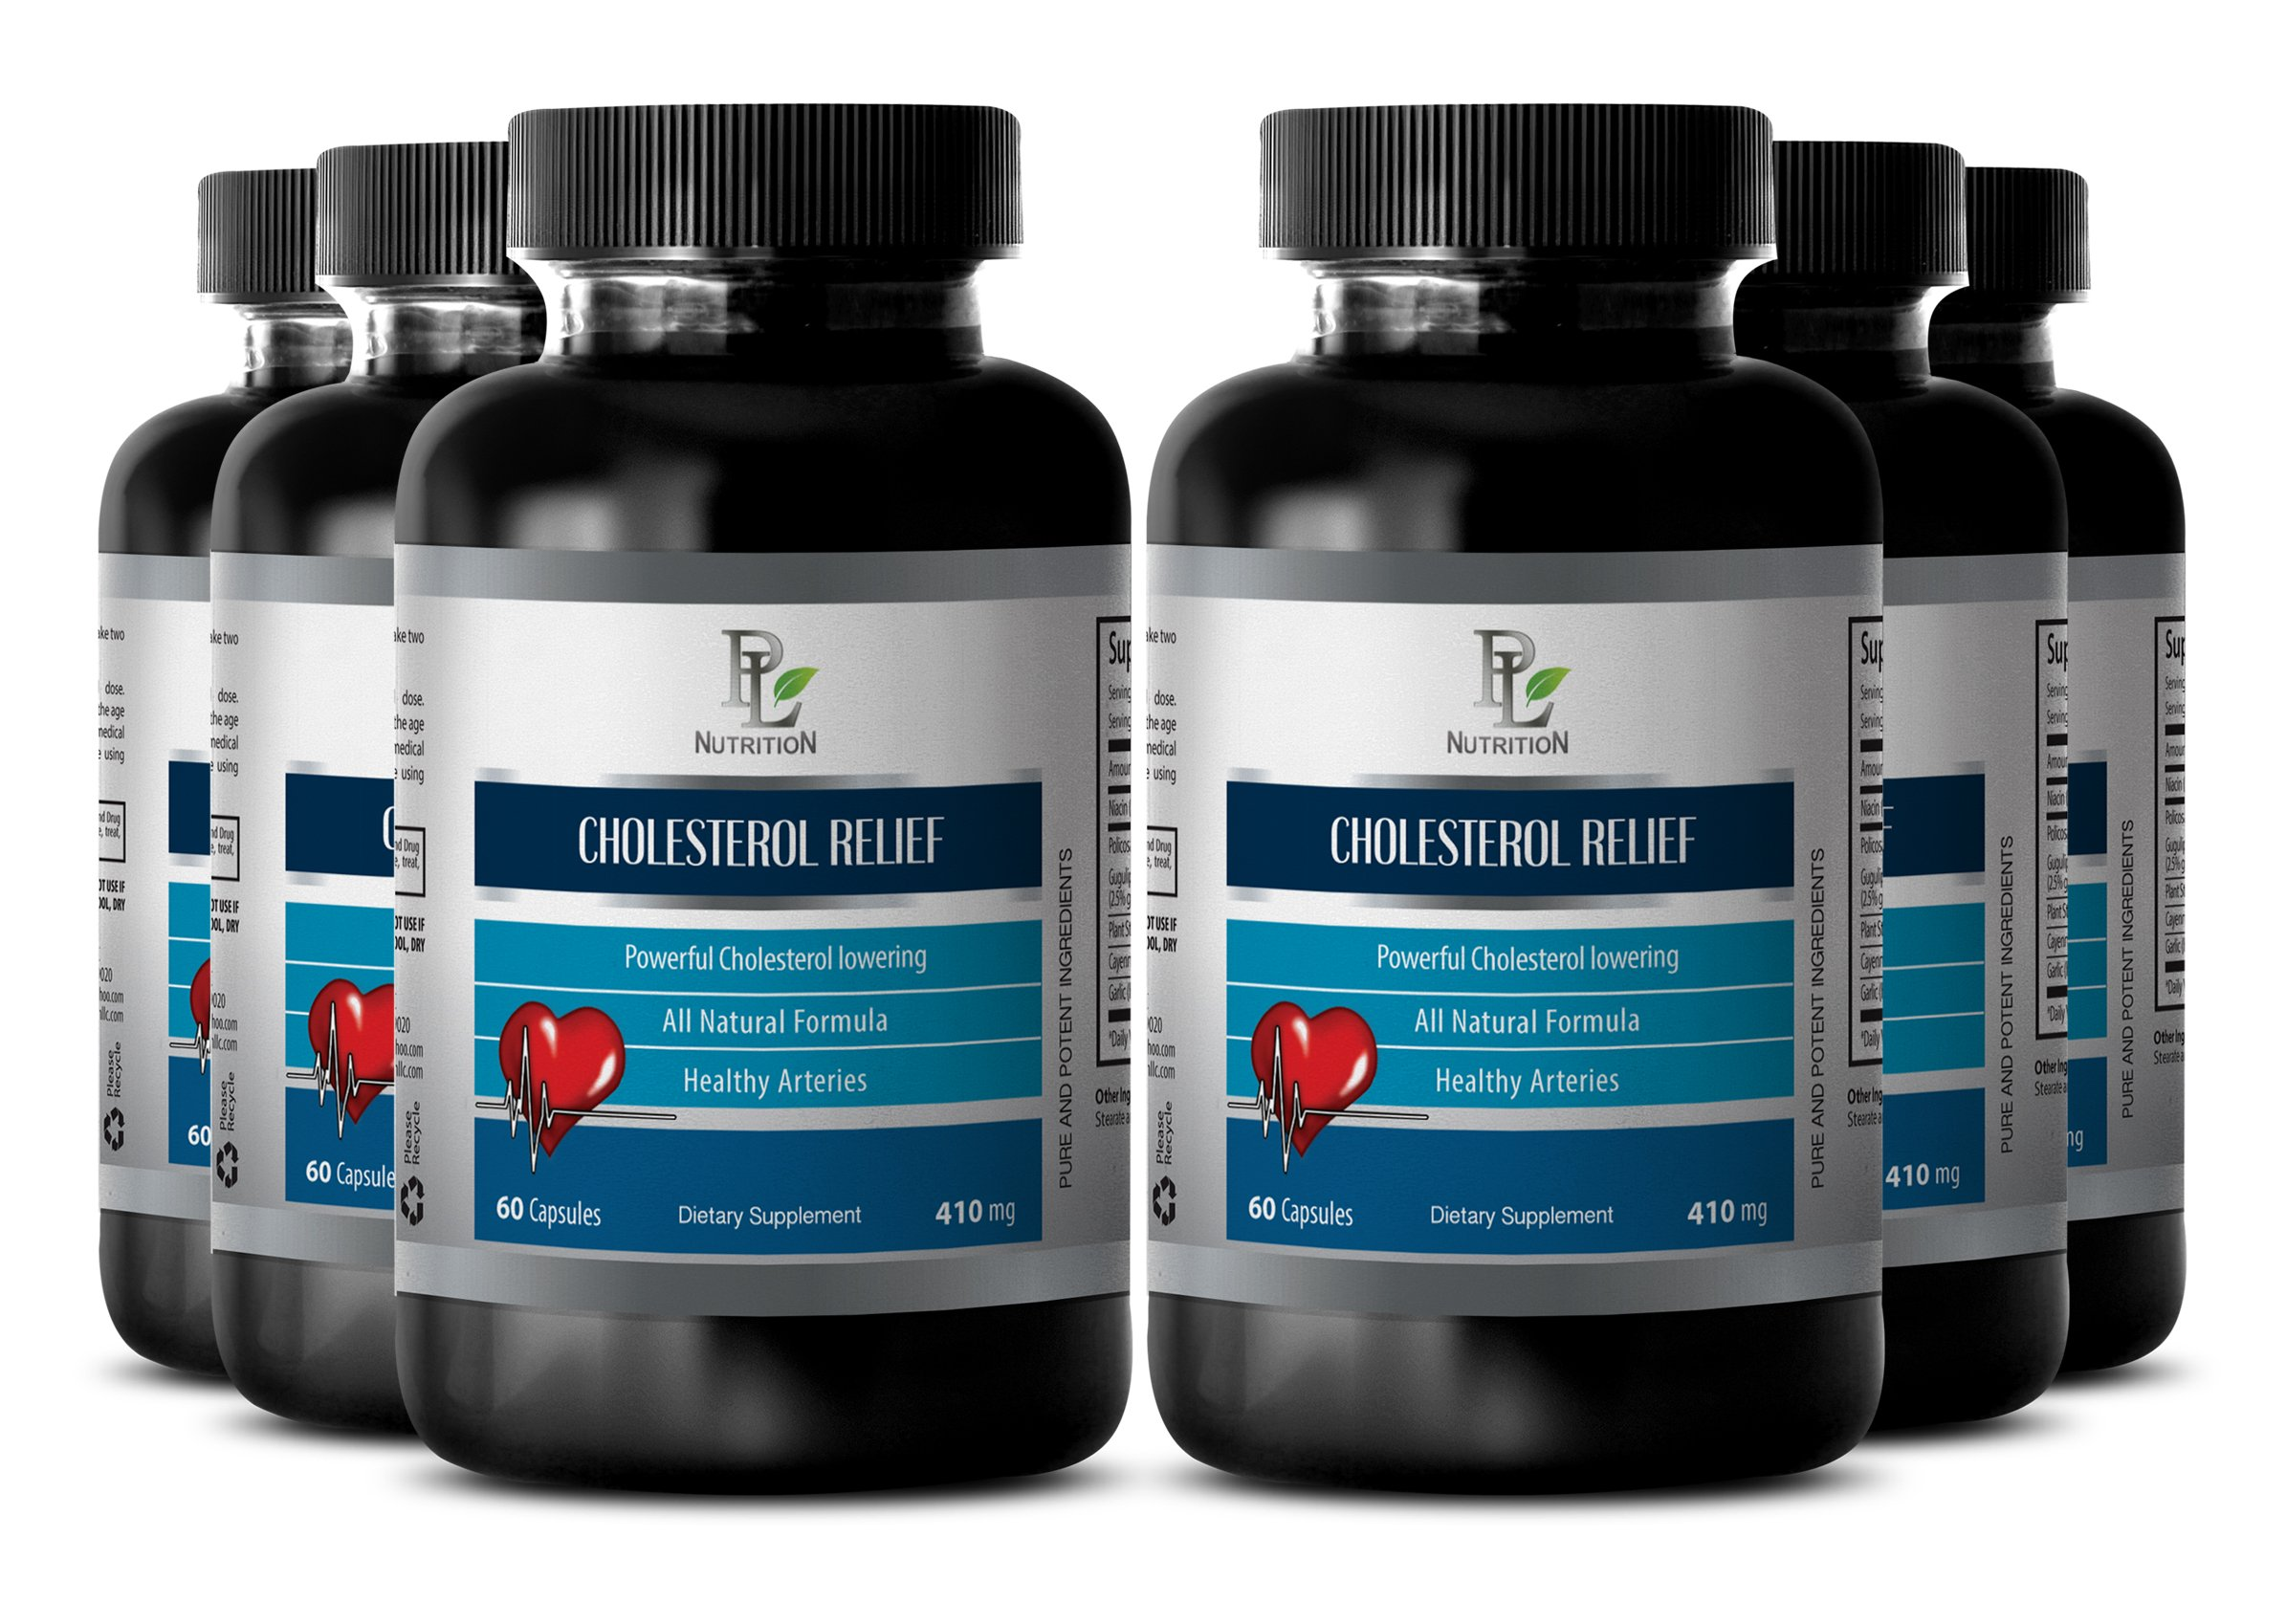 Cholesterol lowering - CHOLESTEROL RELIEF - Improve blood circulation supplement - 6 Bottles 360 Capsules